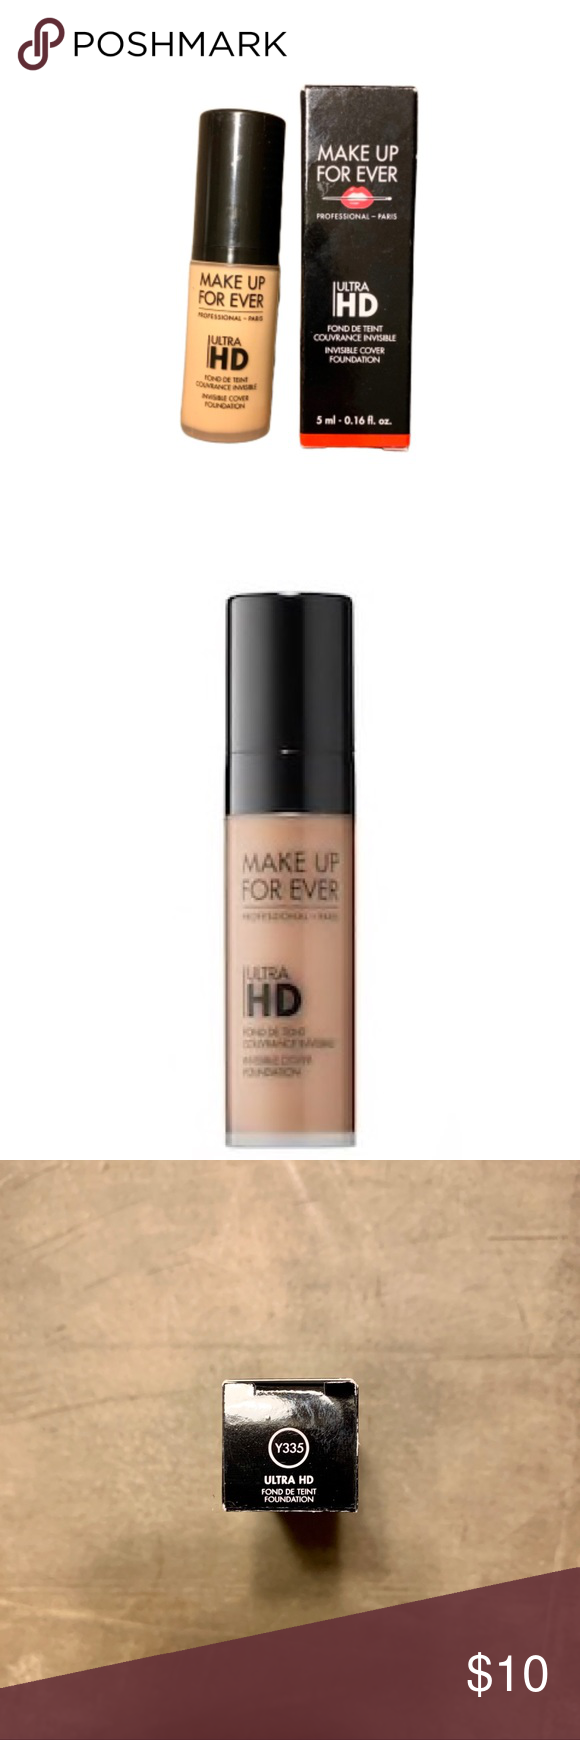 Make Up Forever Invisible Cover Foundation Mini size 5ml